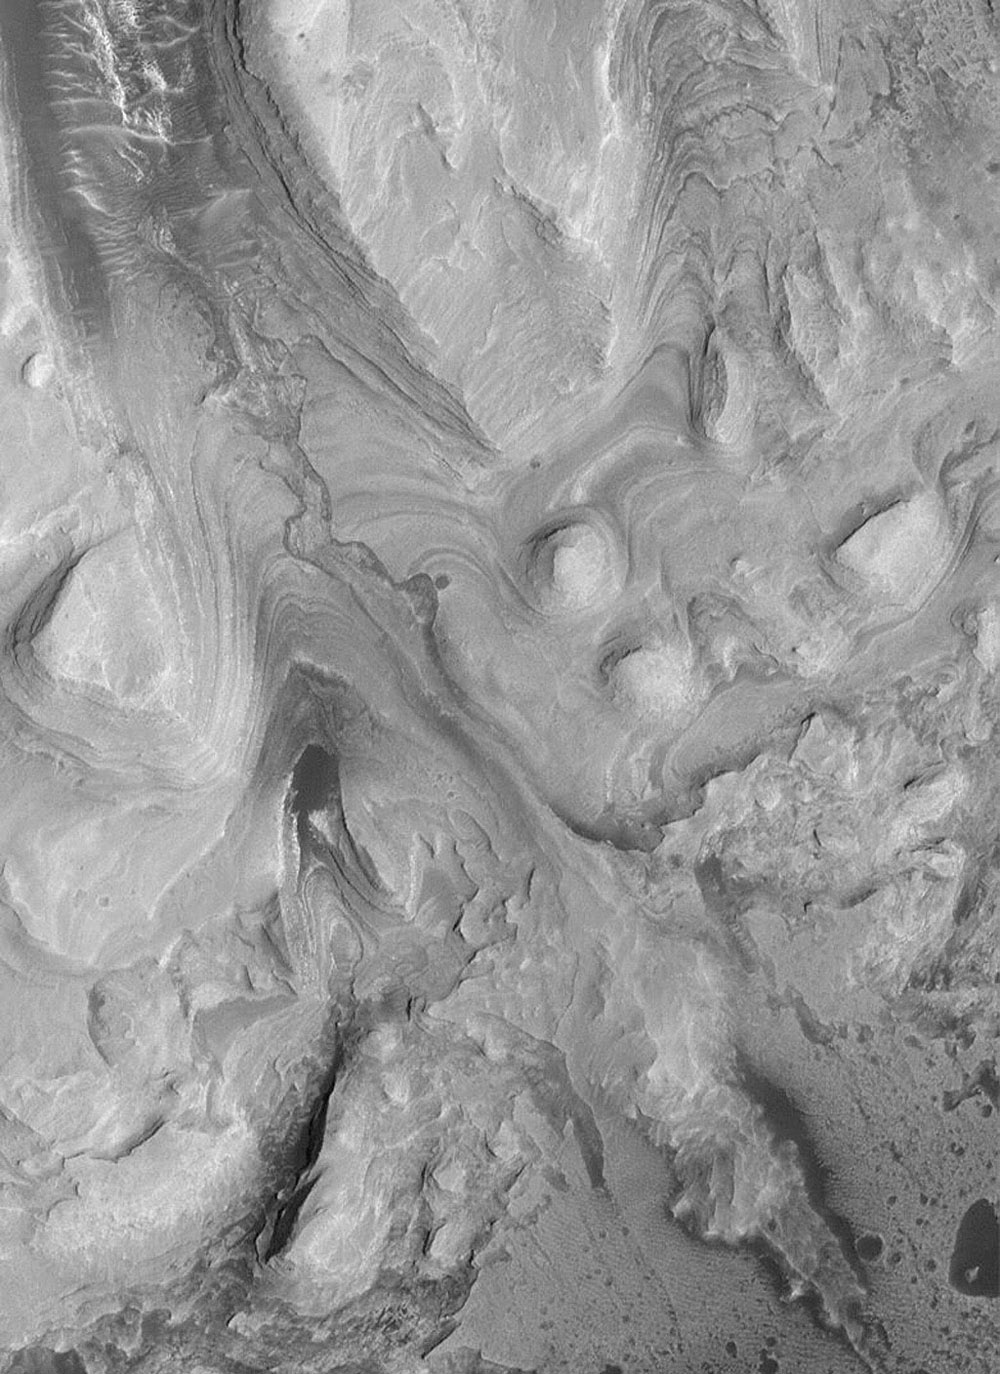 NASA's Mars Global Surveyor shows southwestern Candor Chasma on Mars. The most striking feature is the filled channel.